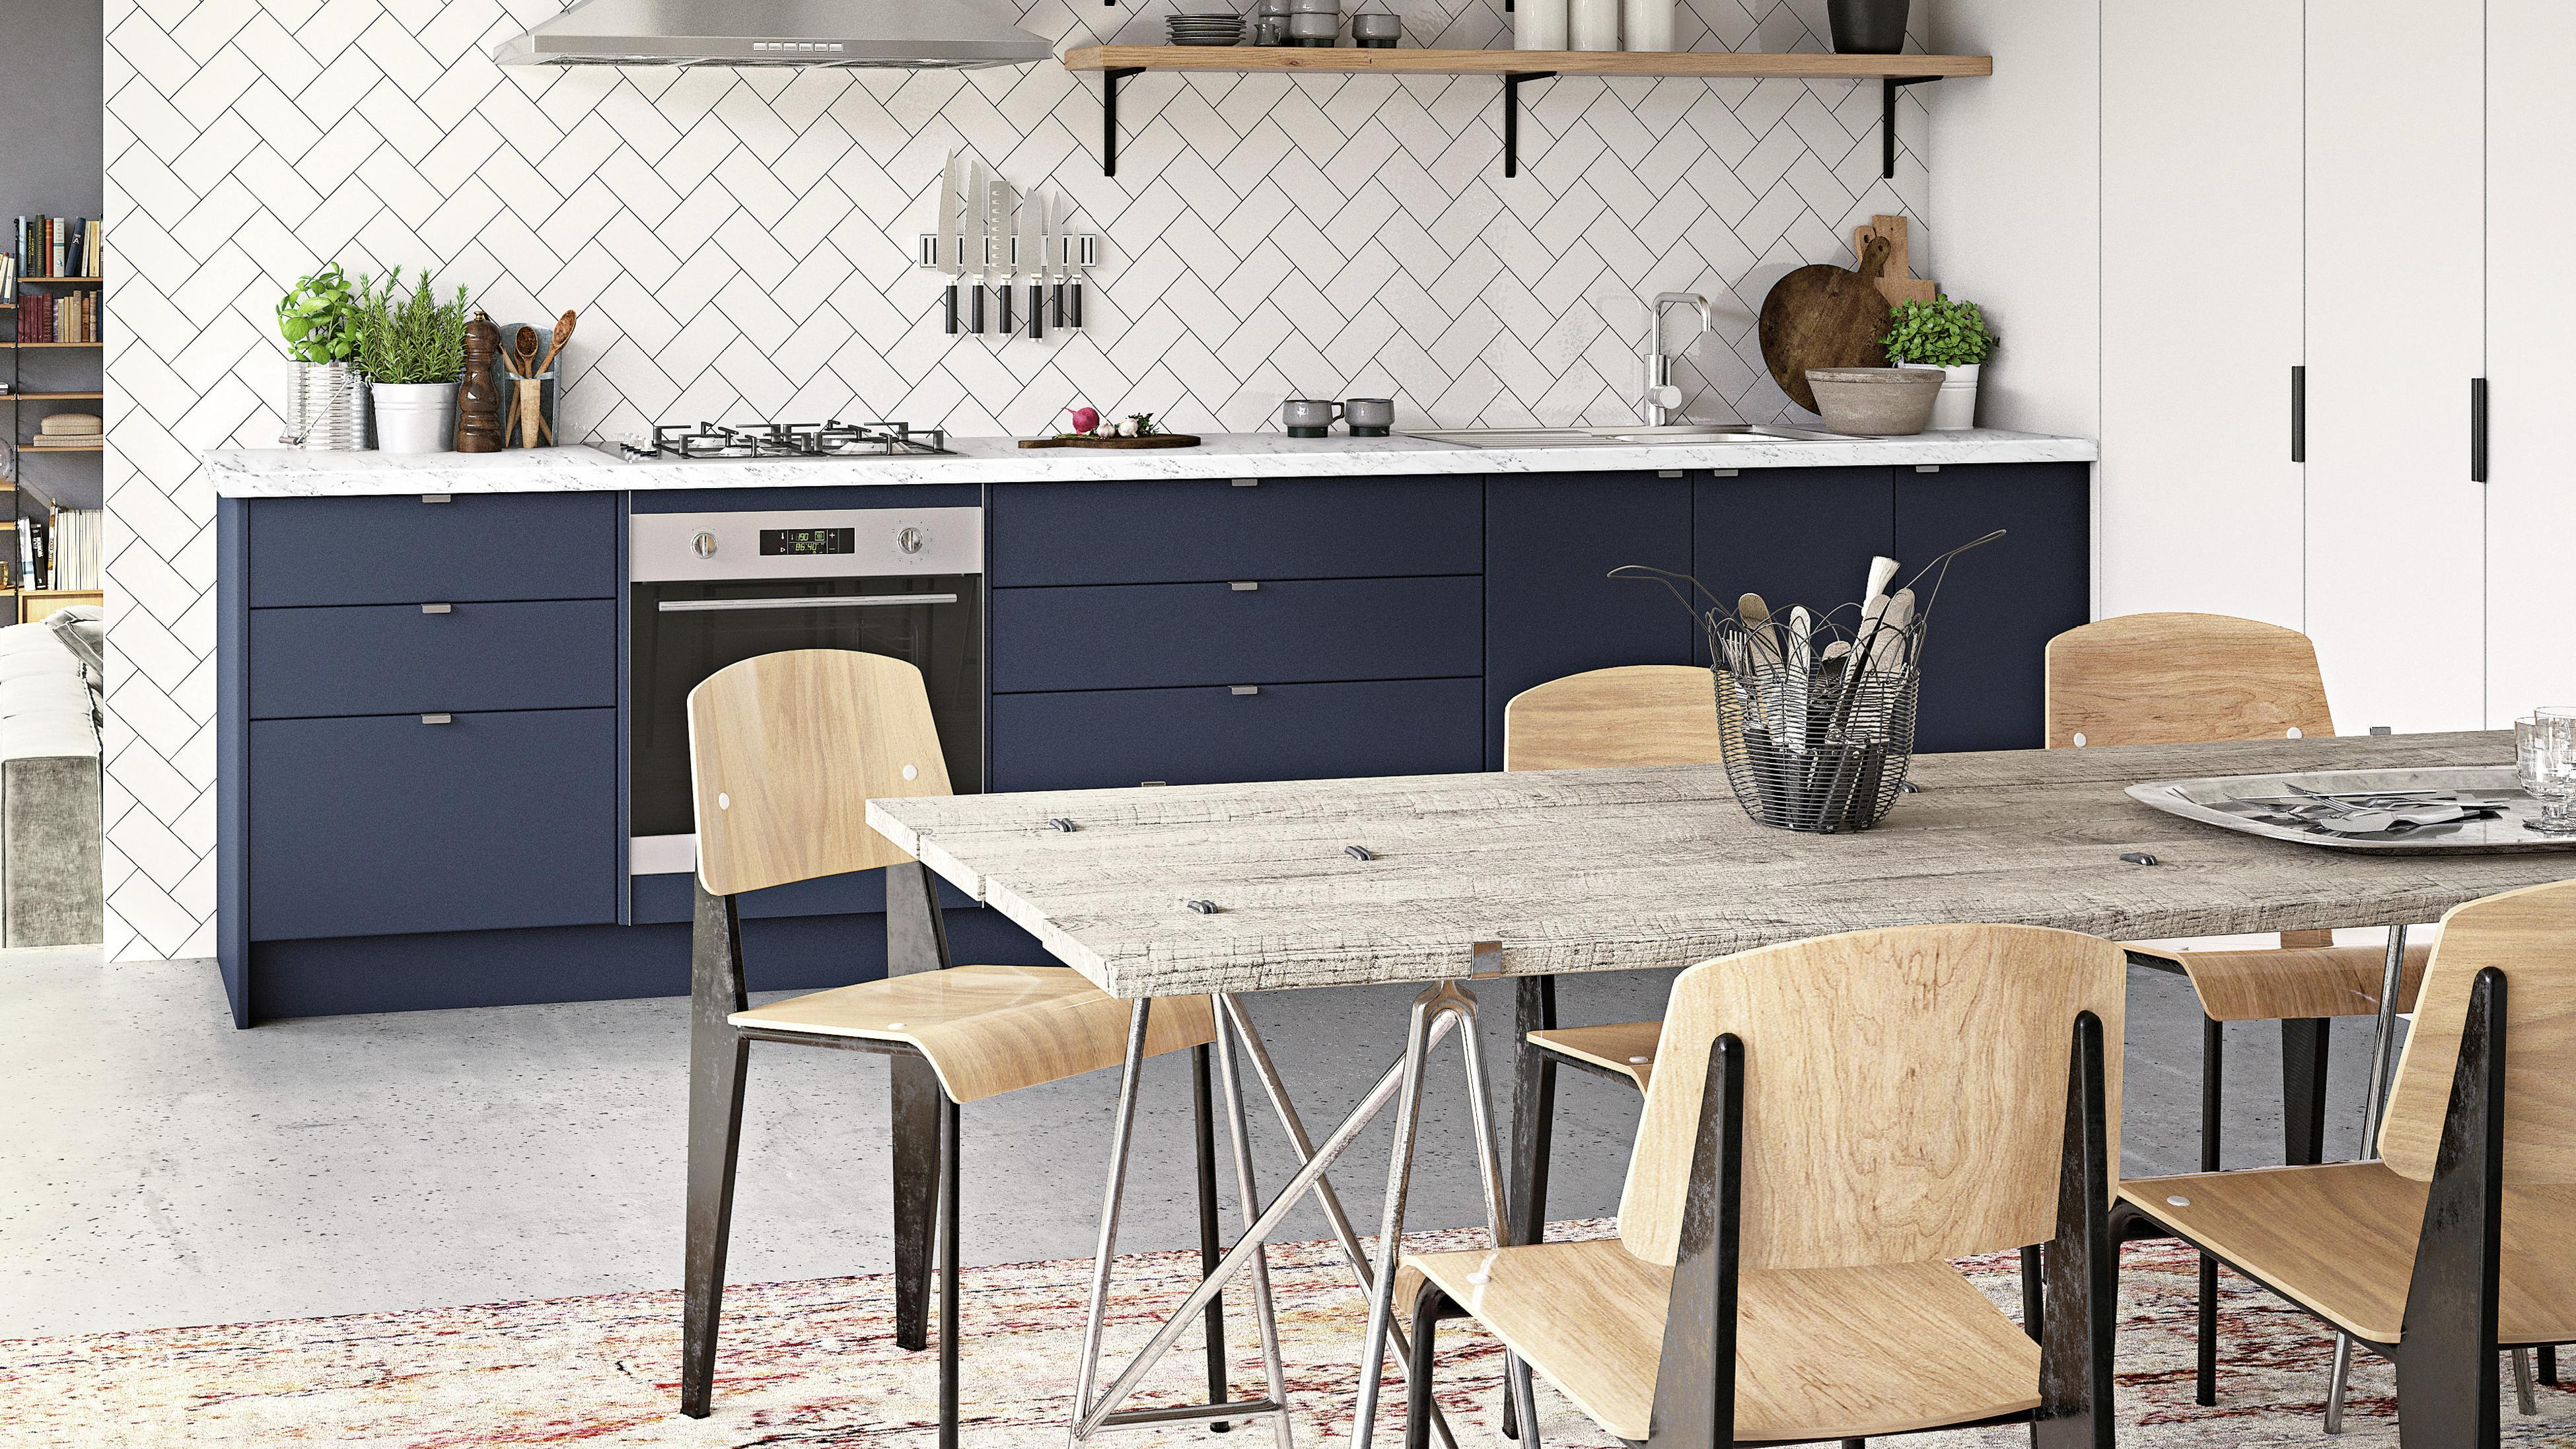 Kitchen featuring navy cabinetry, marble benchtop and subway tiled splashback.